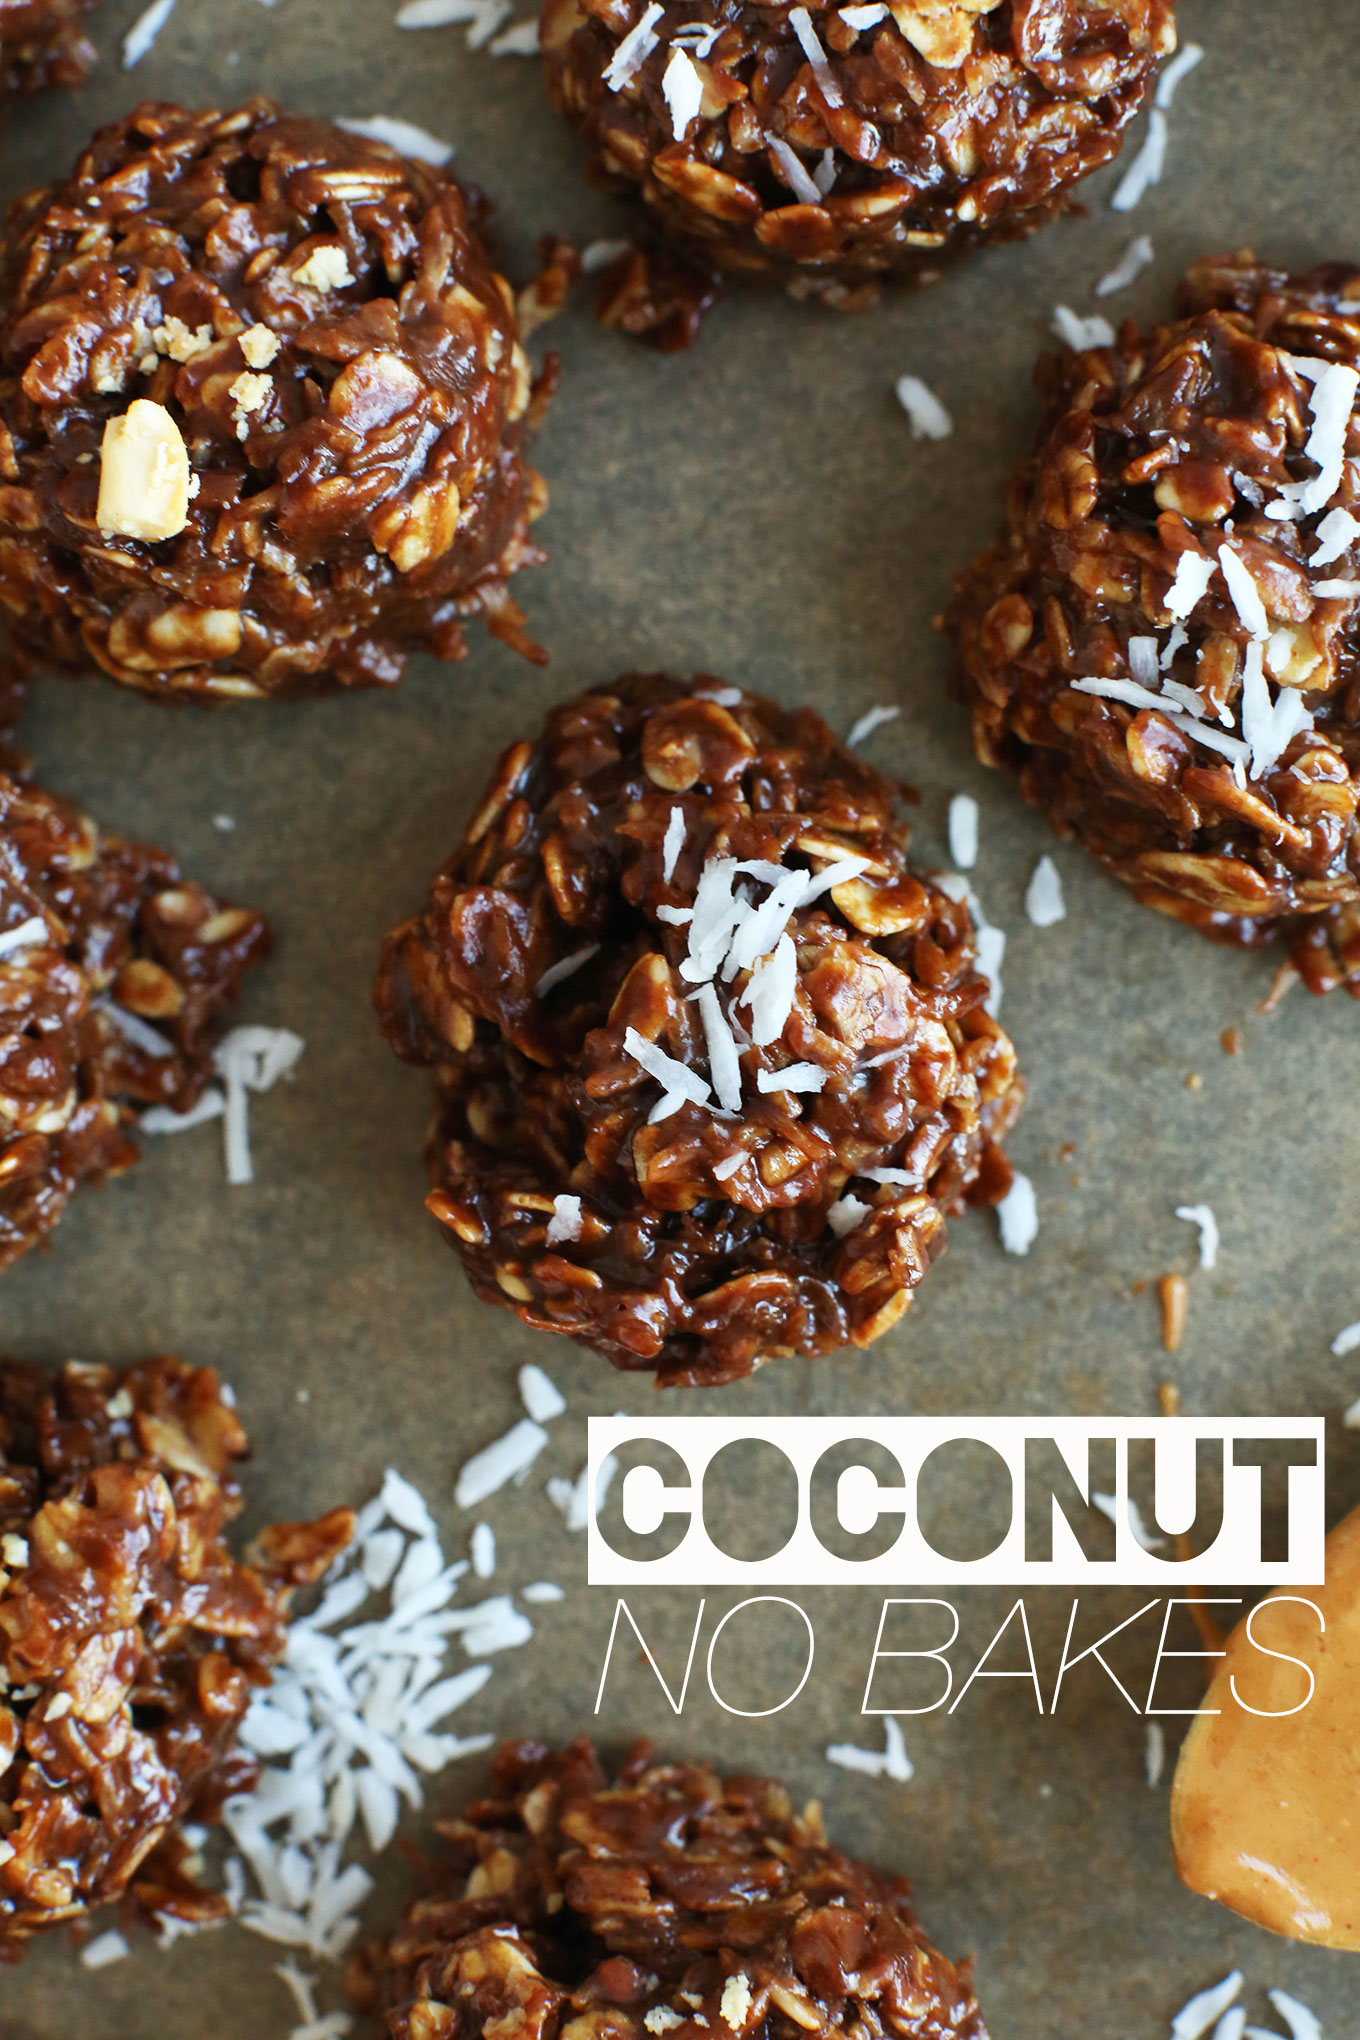 Gluten-free vegan Coconut No-Bake Cookies on parchment paper